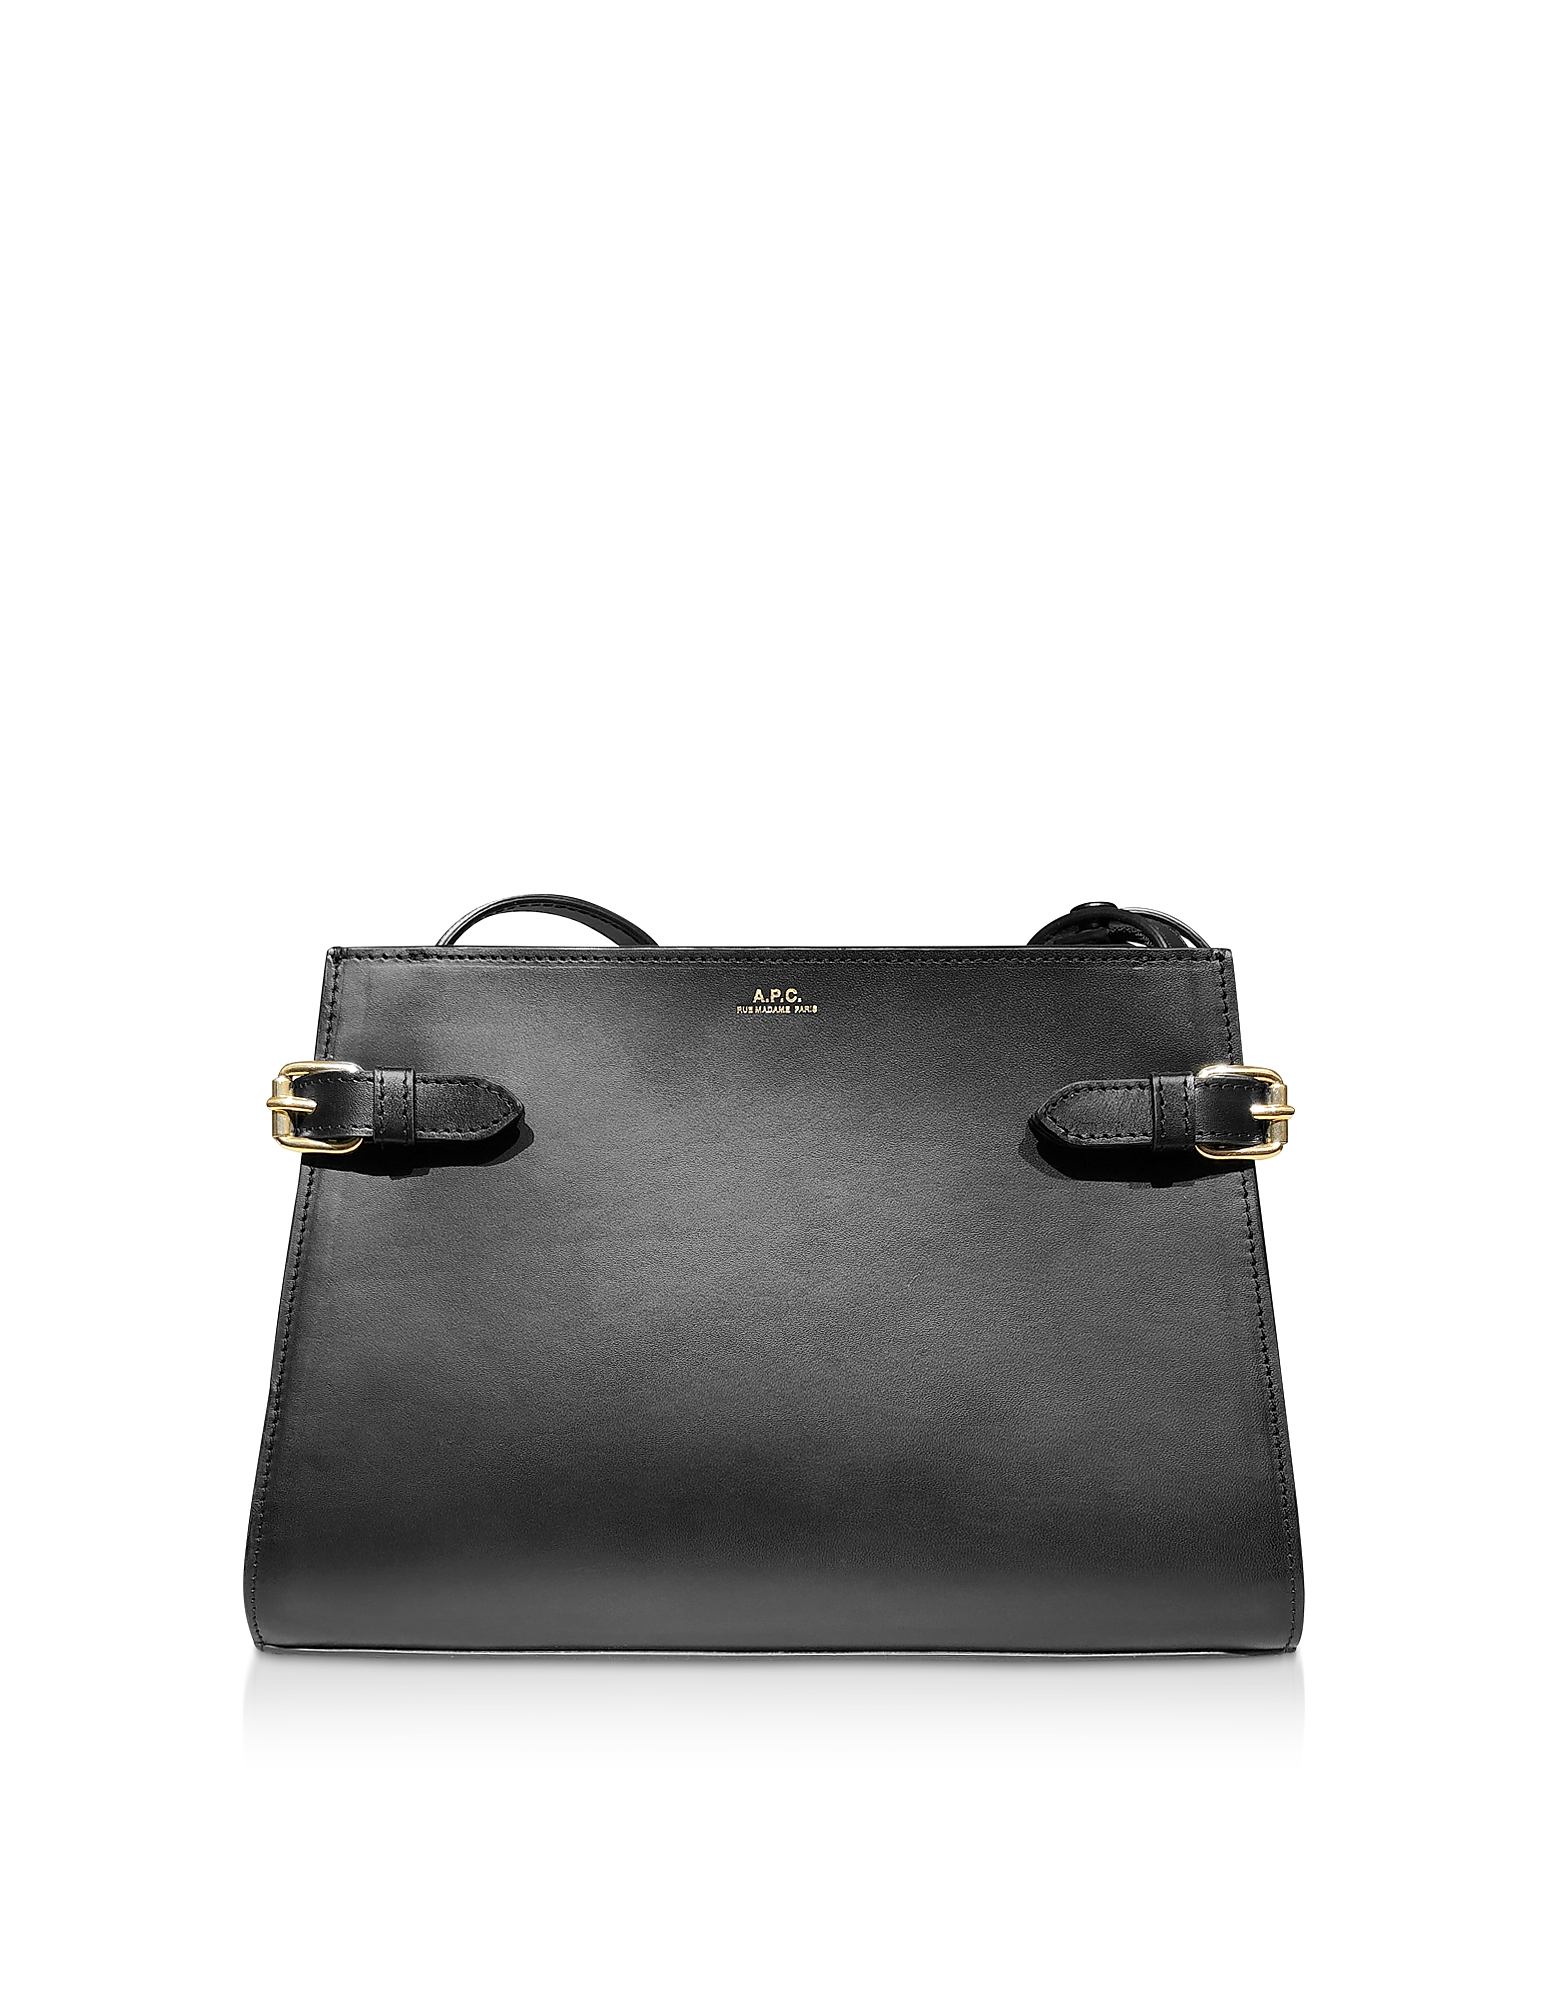 A.P.C.  Handbags Genuine Leather Charlotte Shoulder Bag